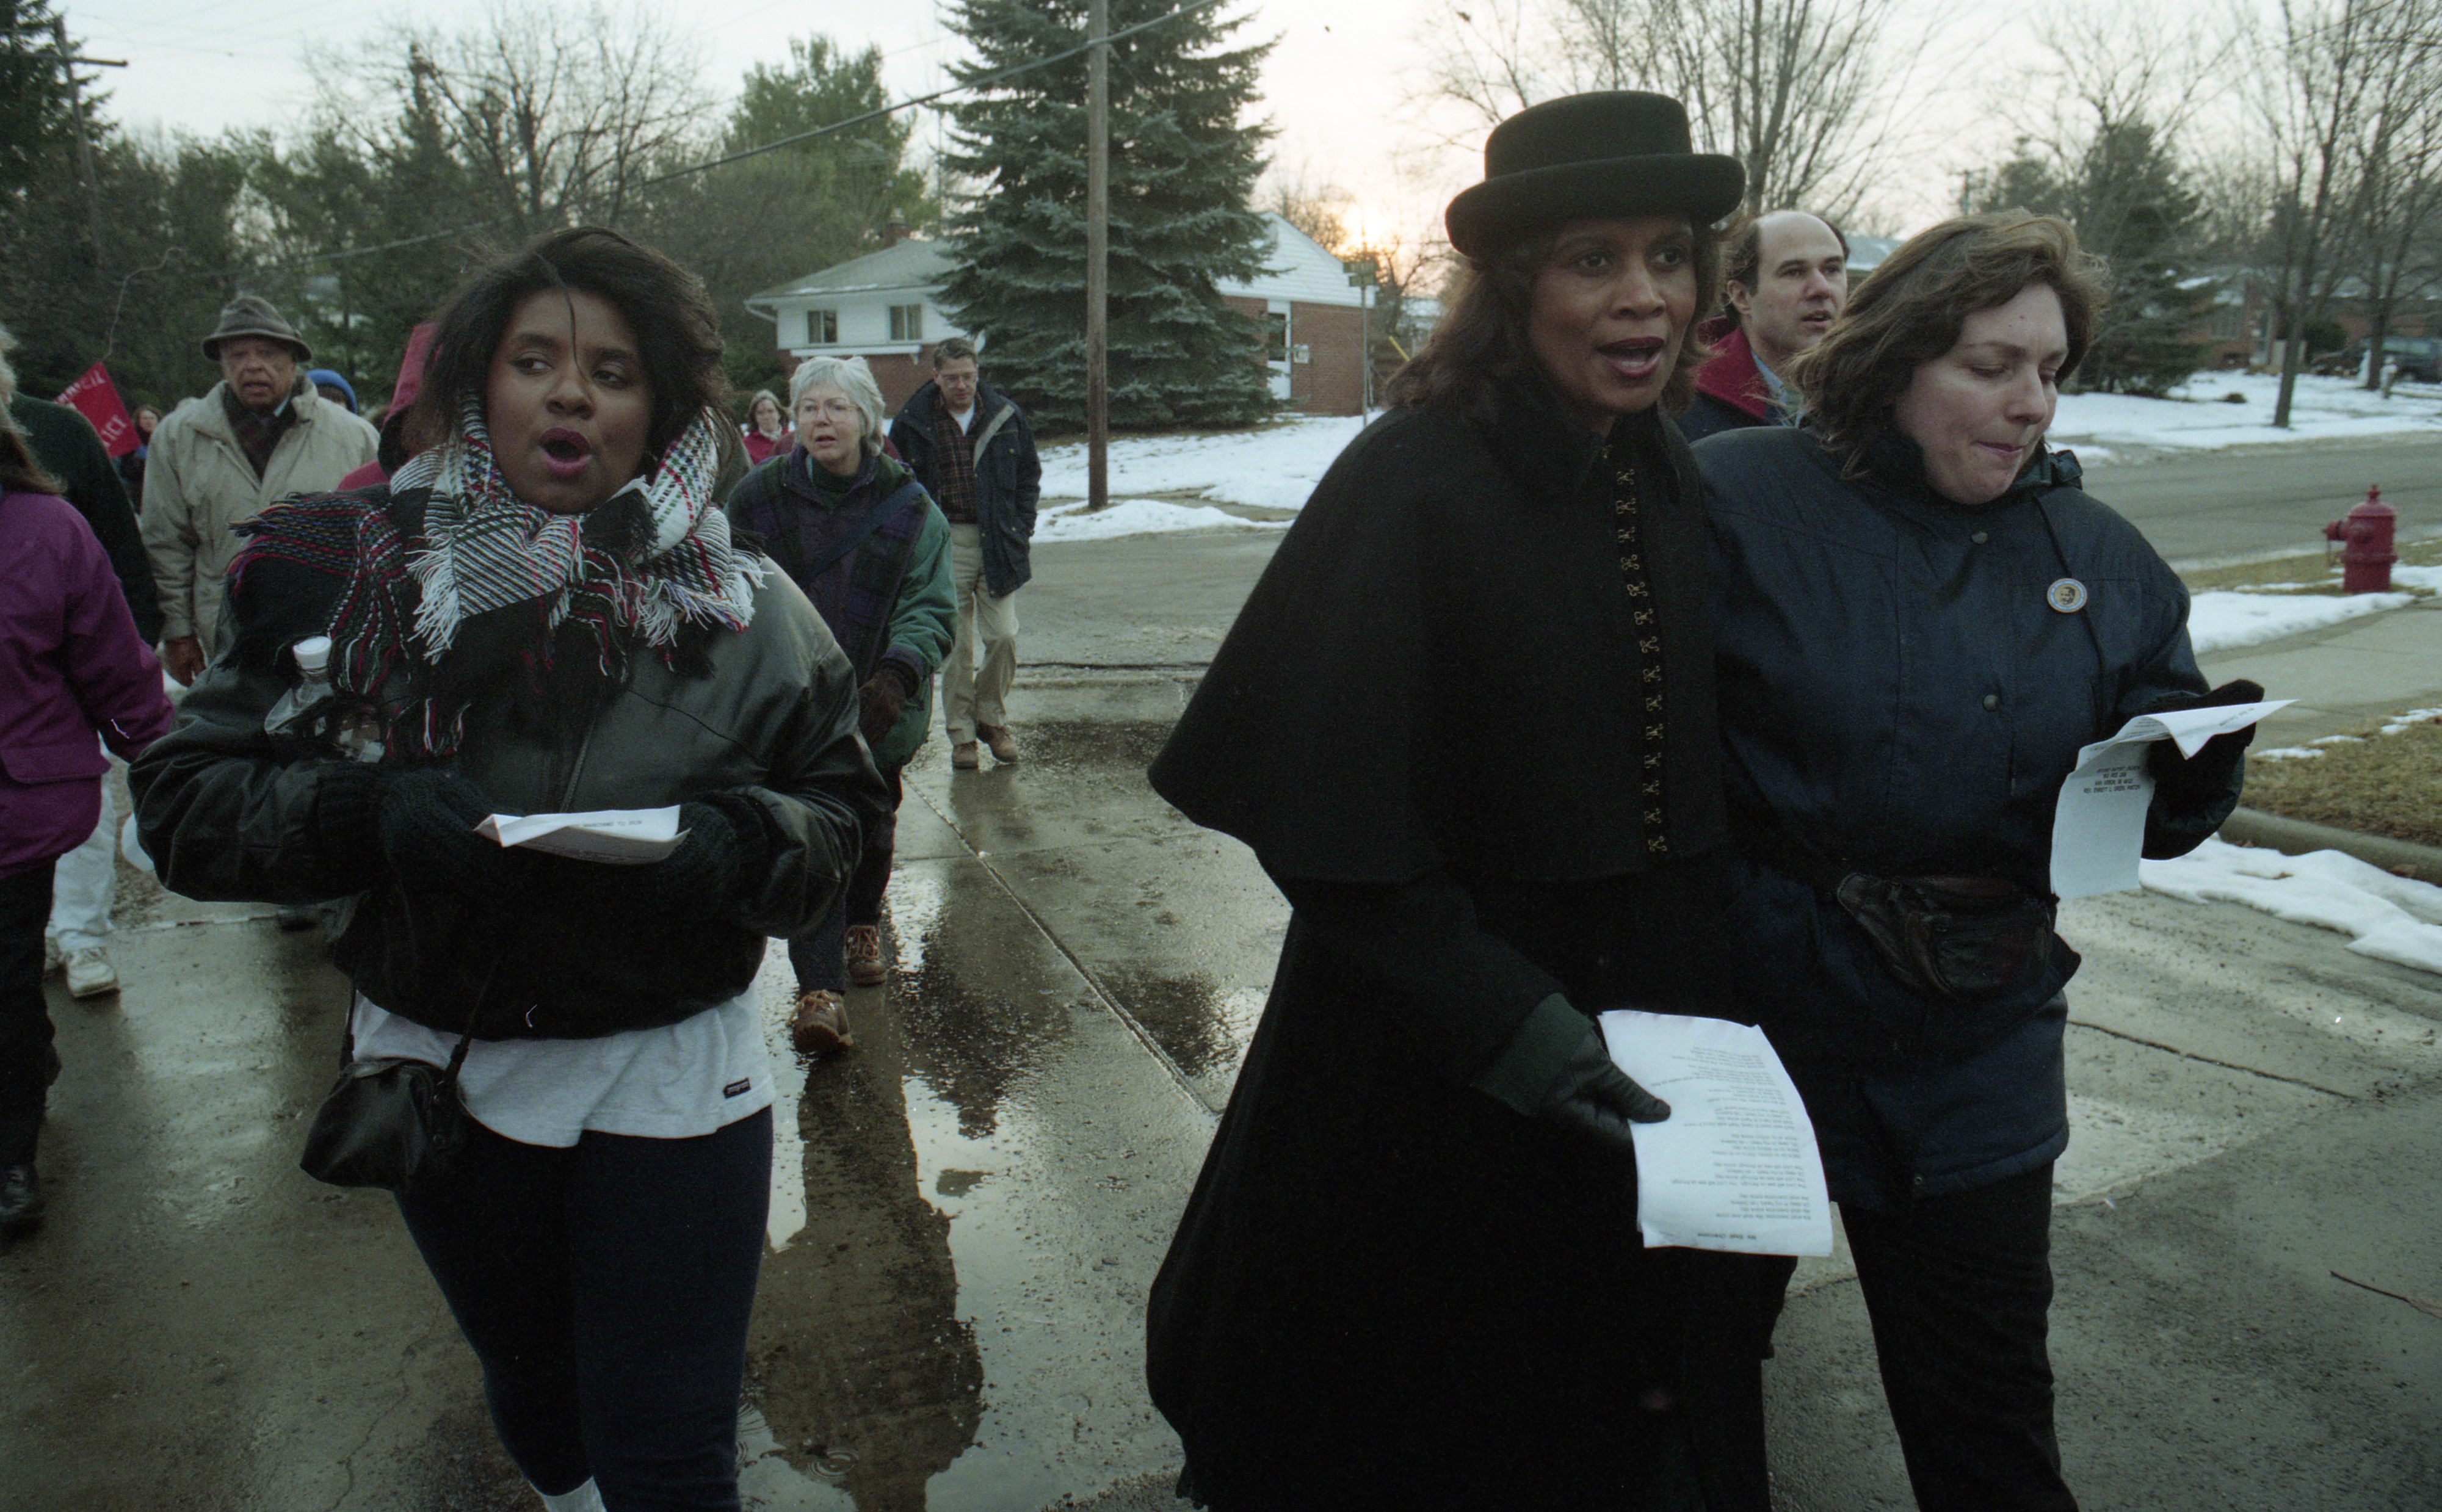 Second Baptist Church Sponsors Annual Unity March To Honor Dr. Martin Luther King Jr., January 1996 image